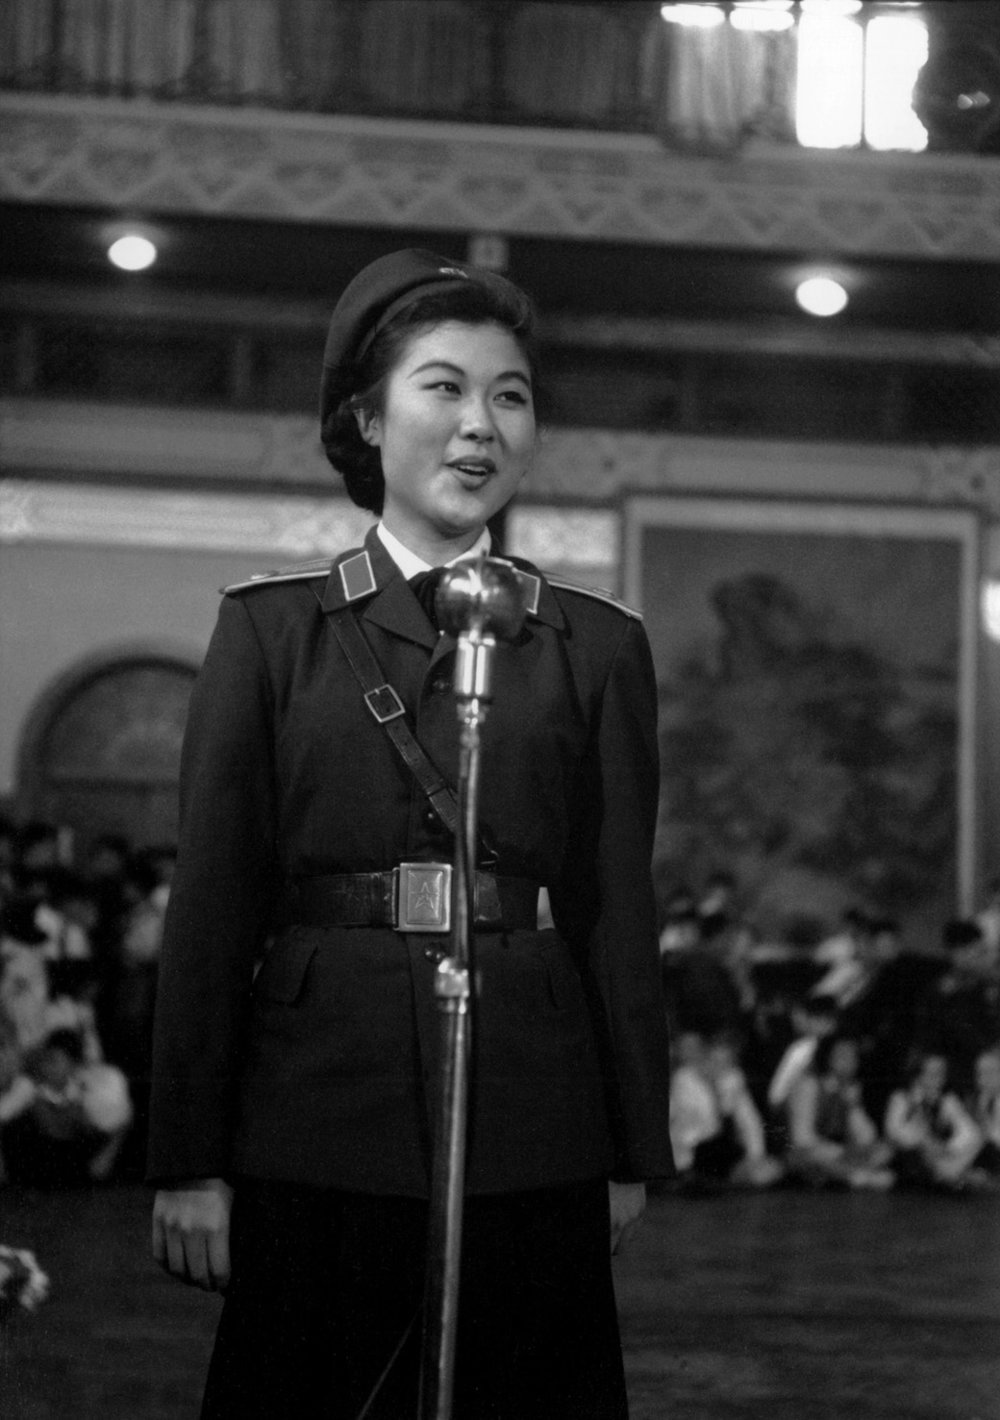 A People's Army announcer at the International Children's Day celebration held in the Peking Hotel.She had lipstick on, which was a very rare sight in China then.. Peking, China, 1 June 1956. (RDH C022-20)